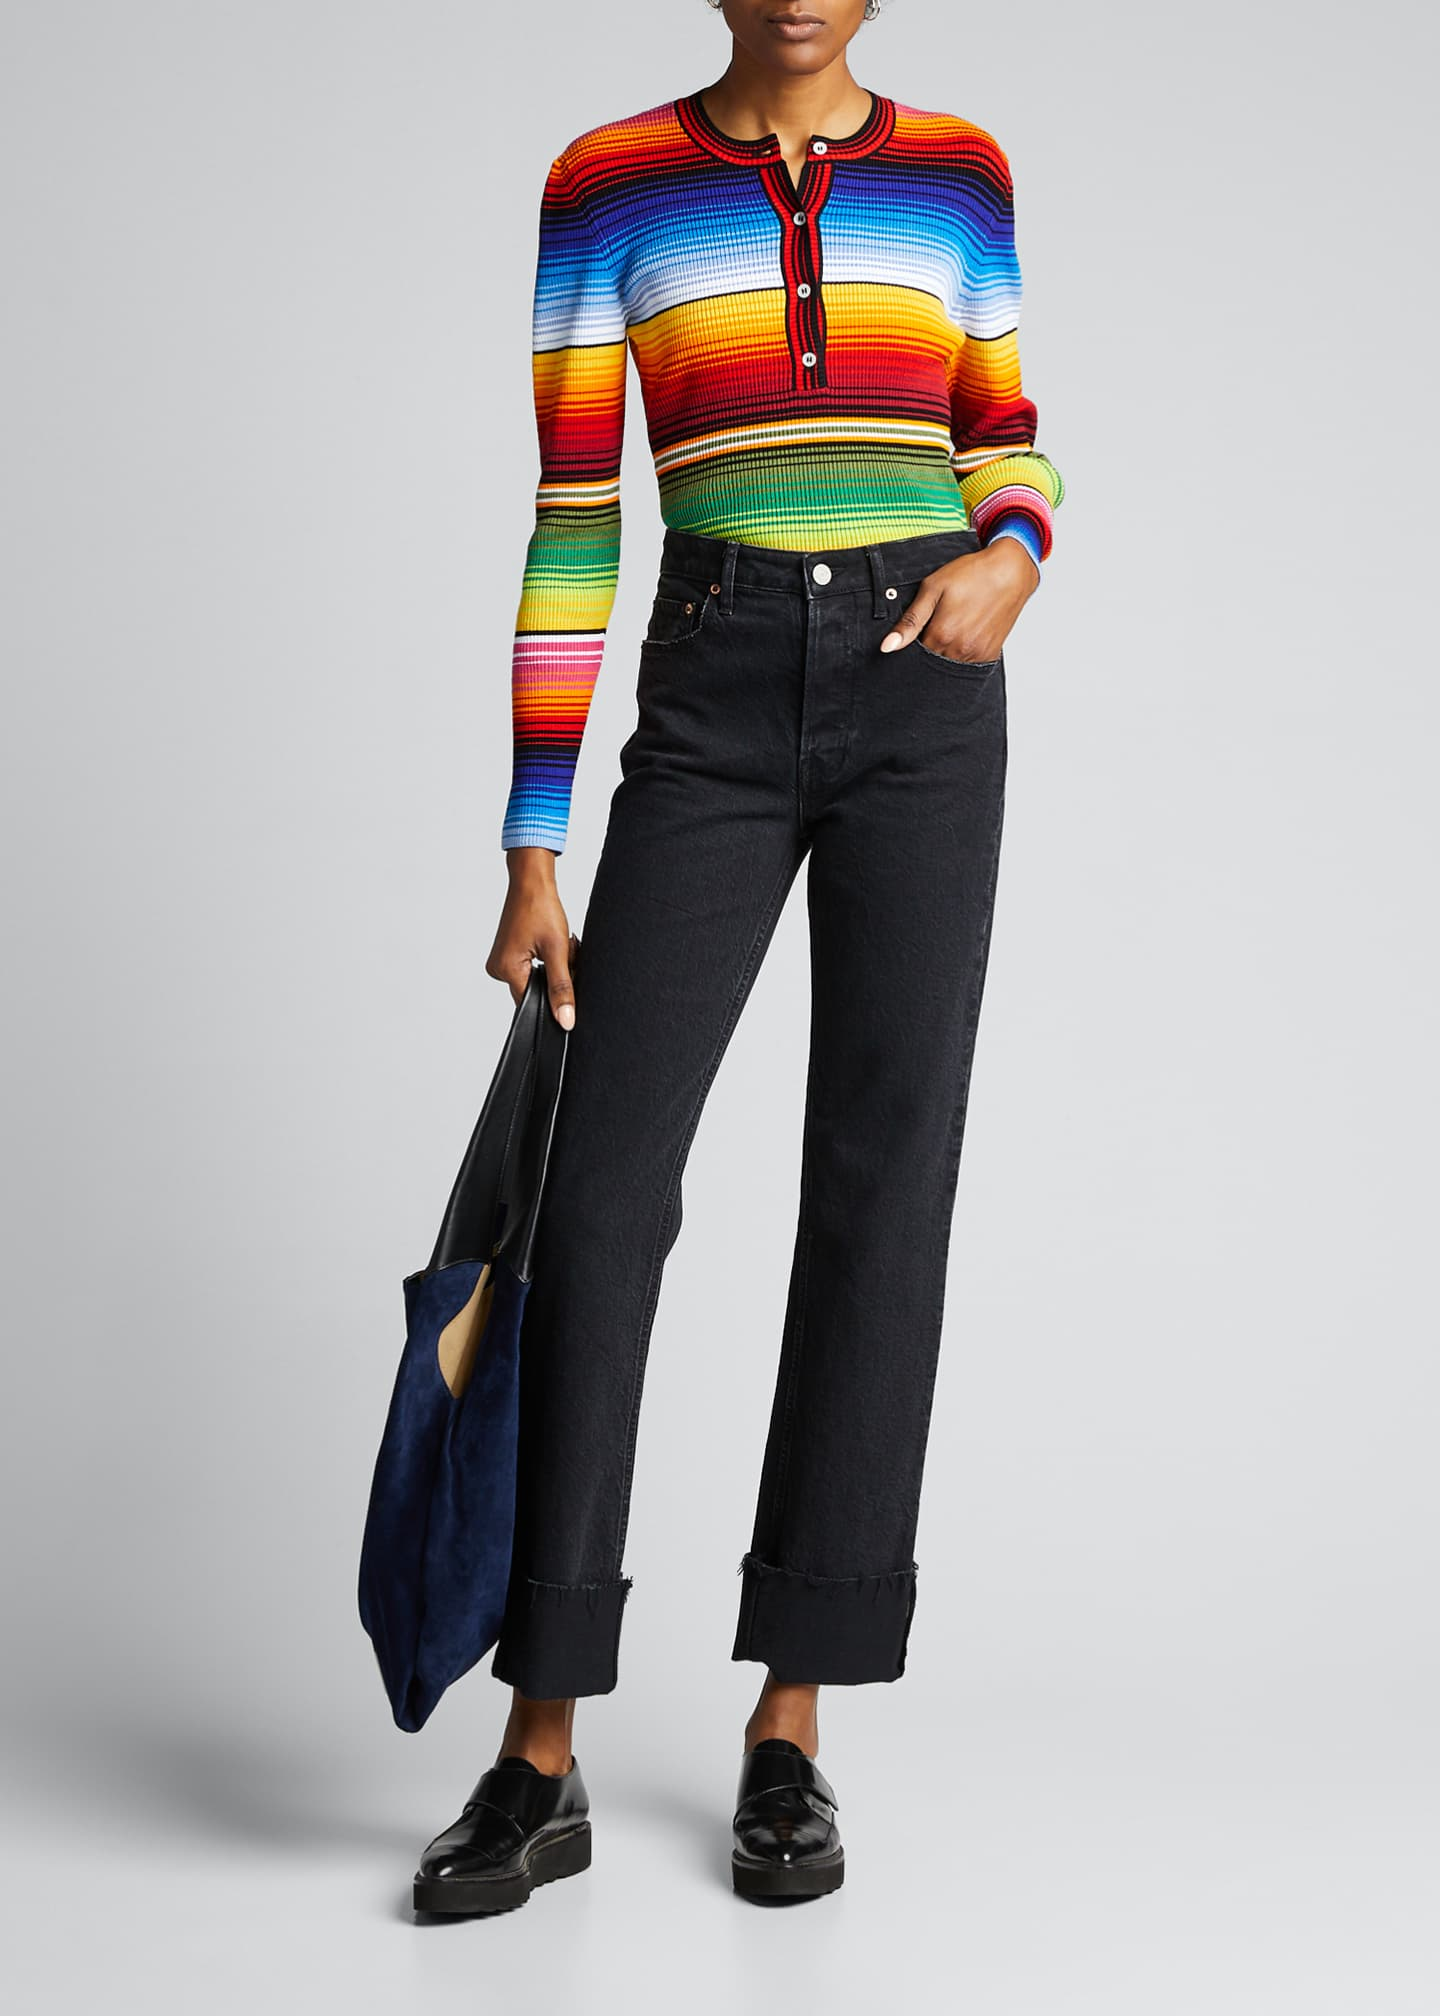 Carolina Herrera Striped Jersey Henley Sweater